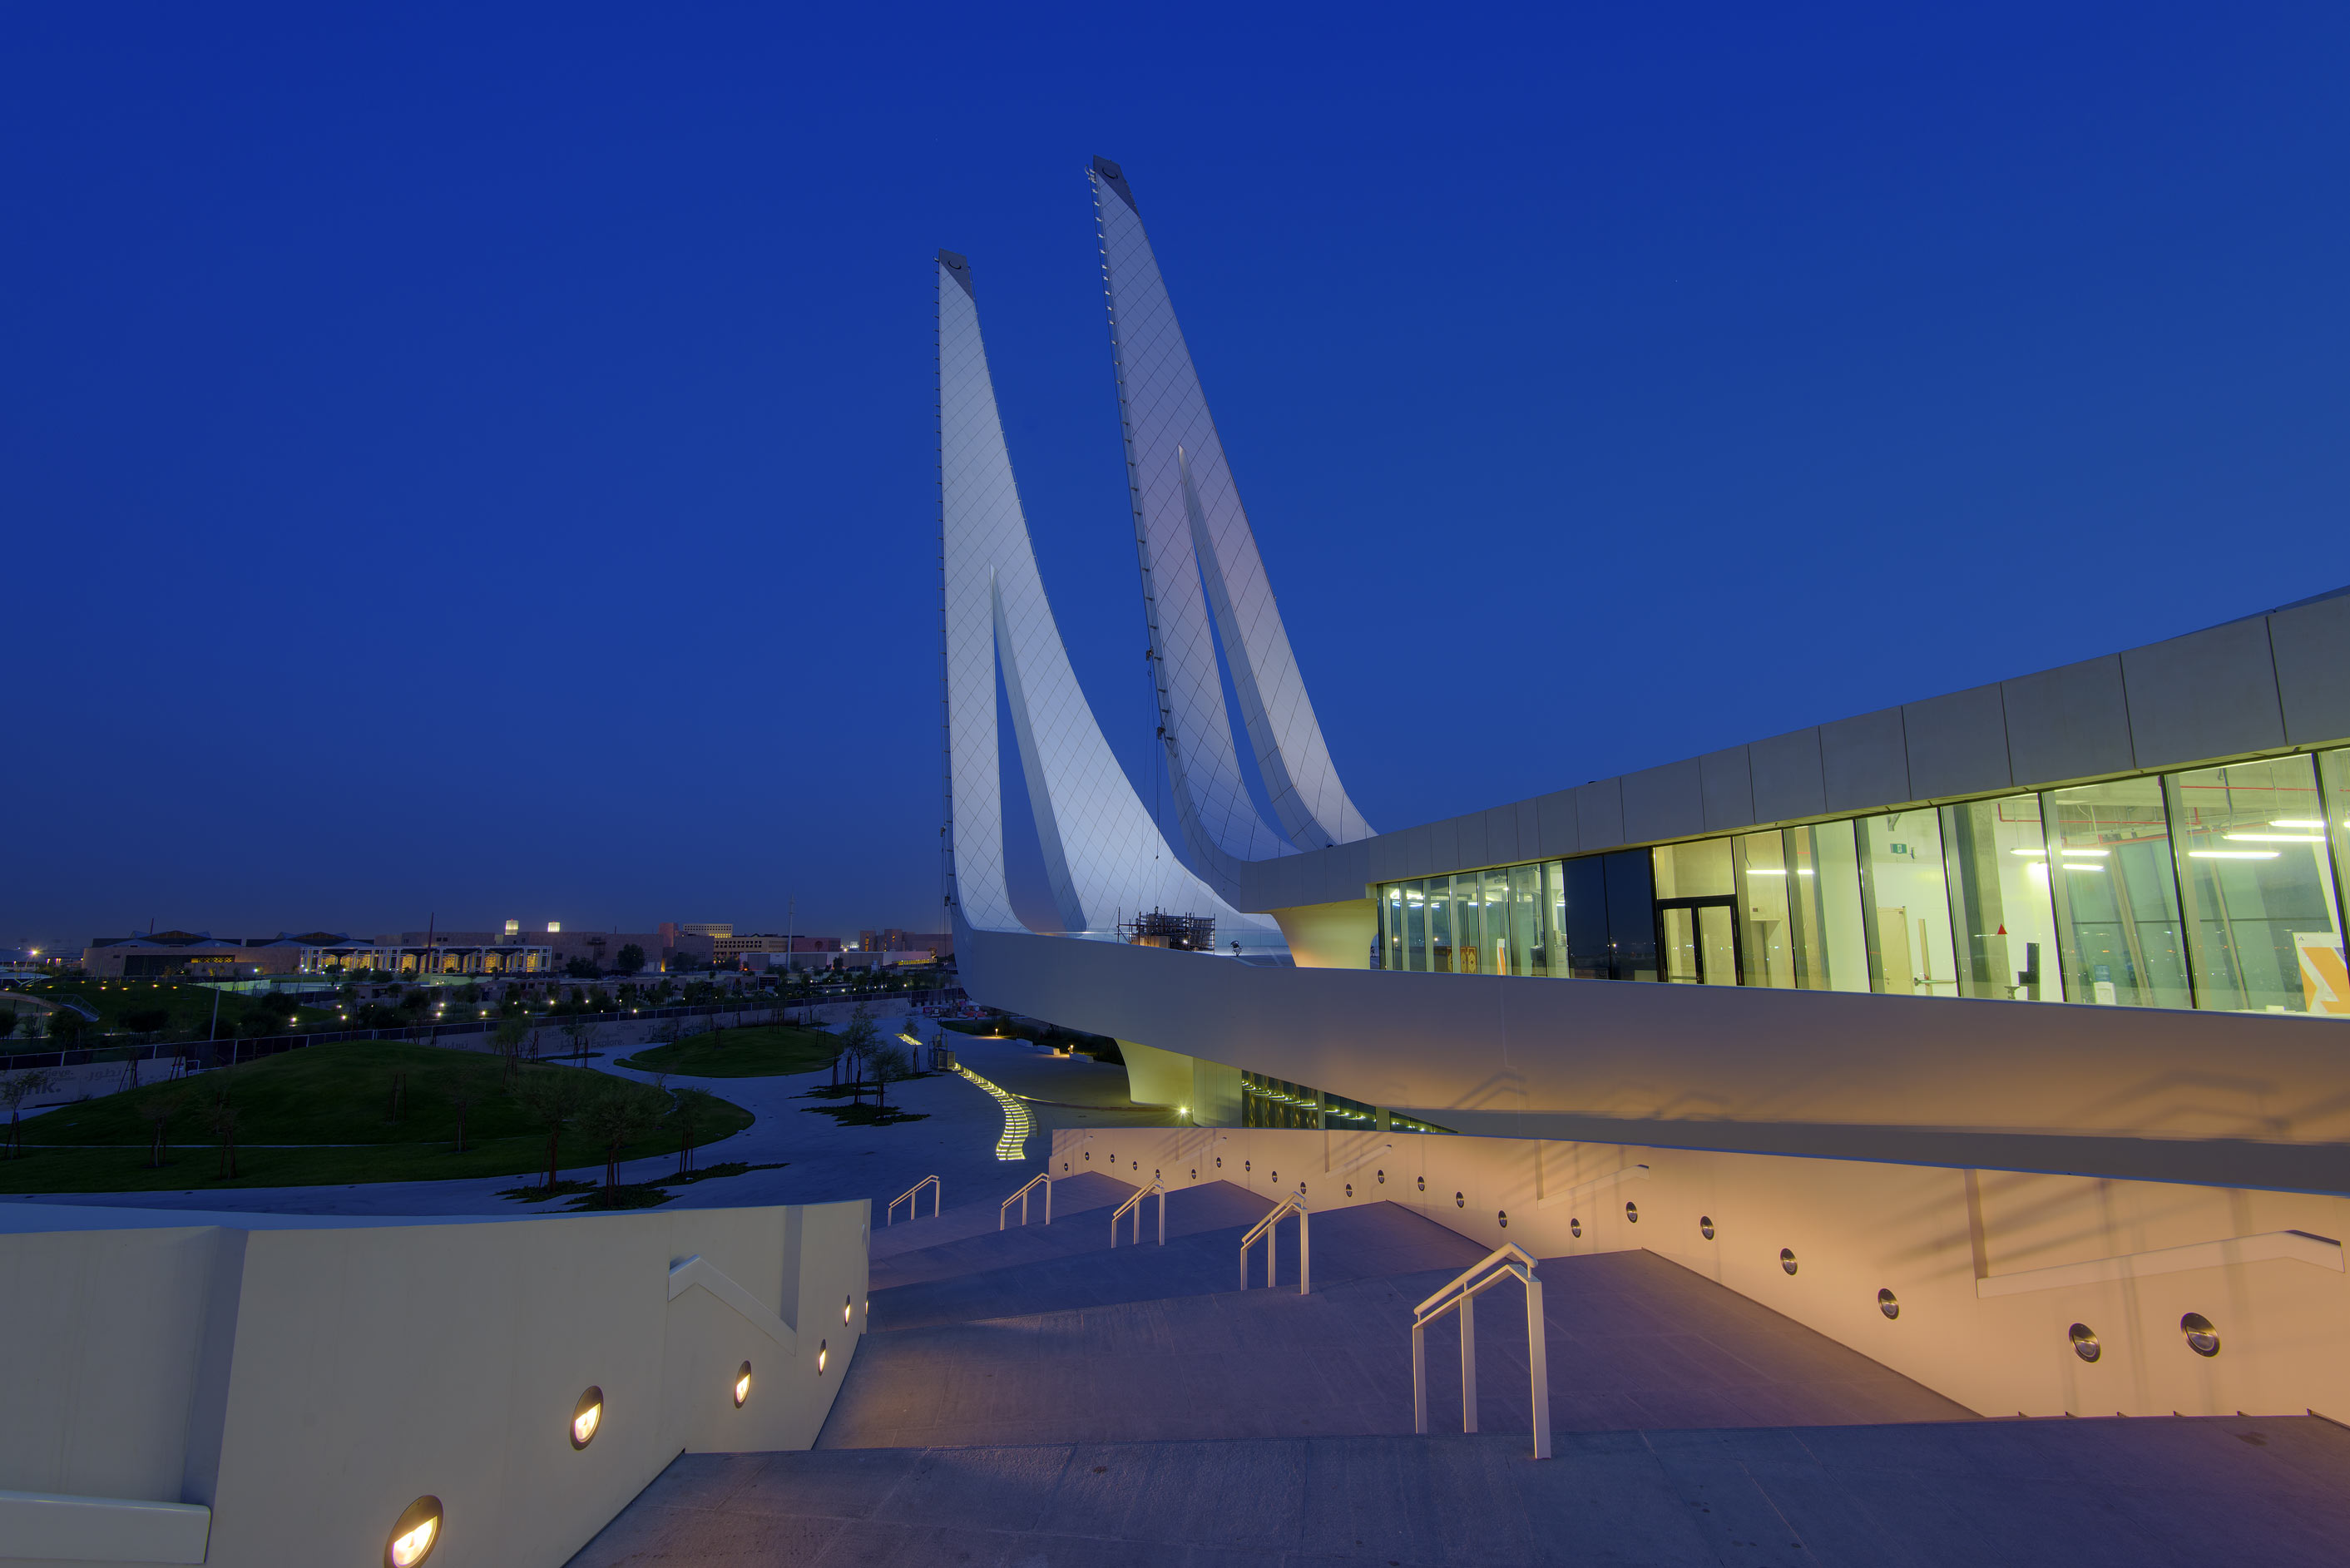 Grand staircase of Education City Mosque. Doha, Qatar